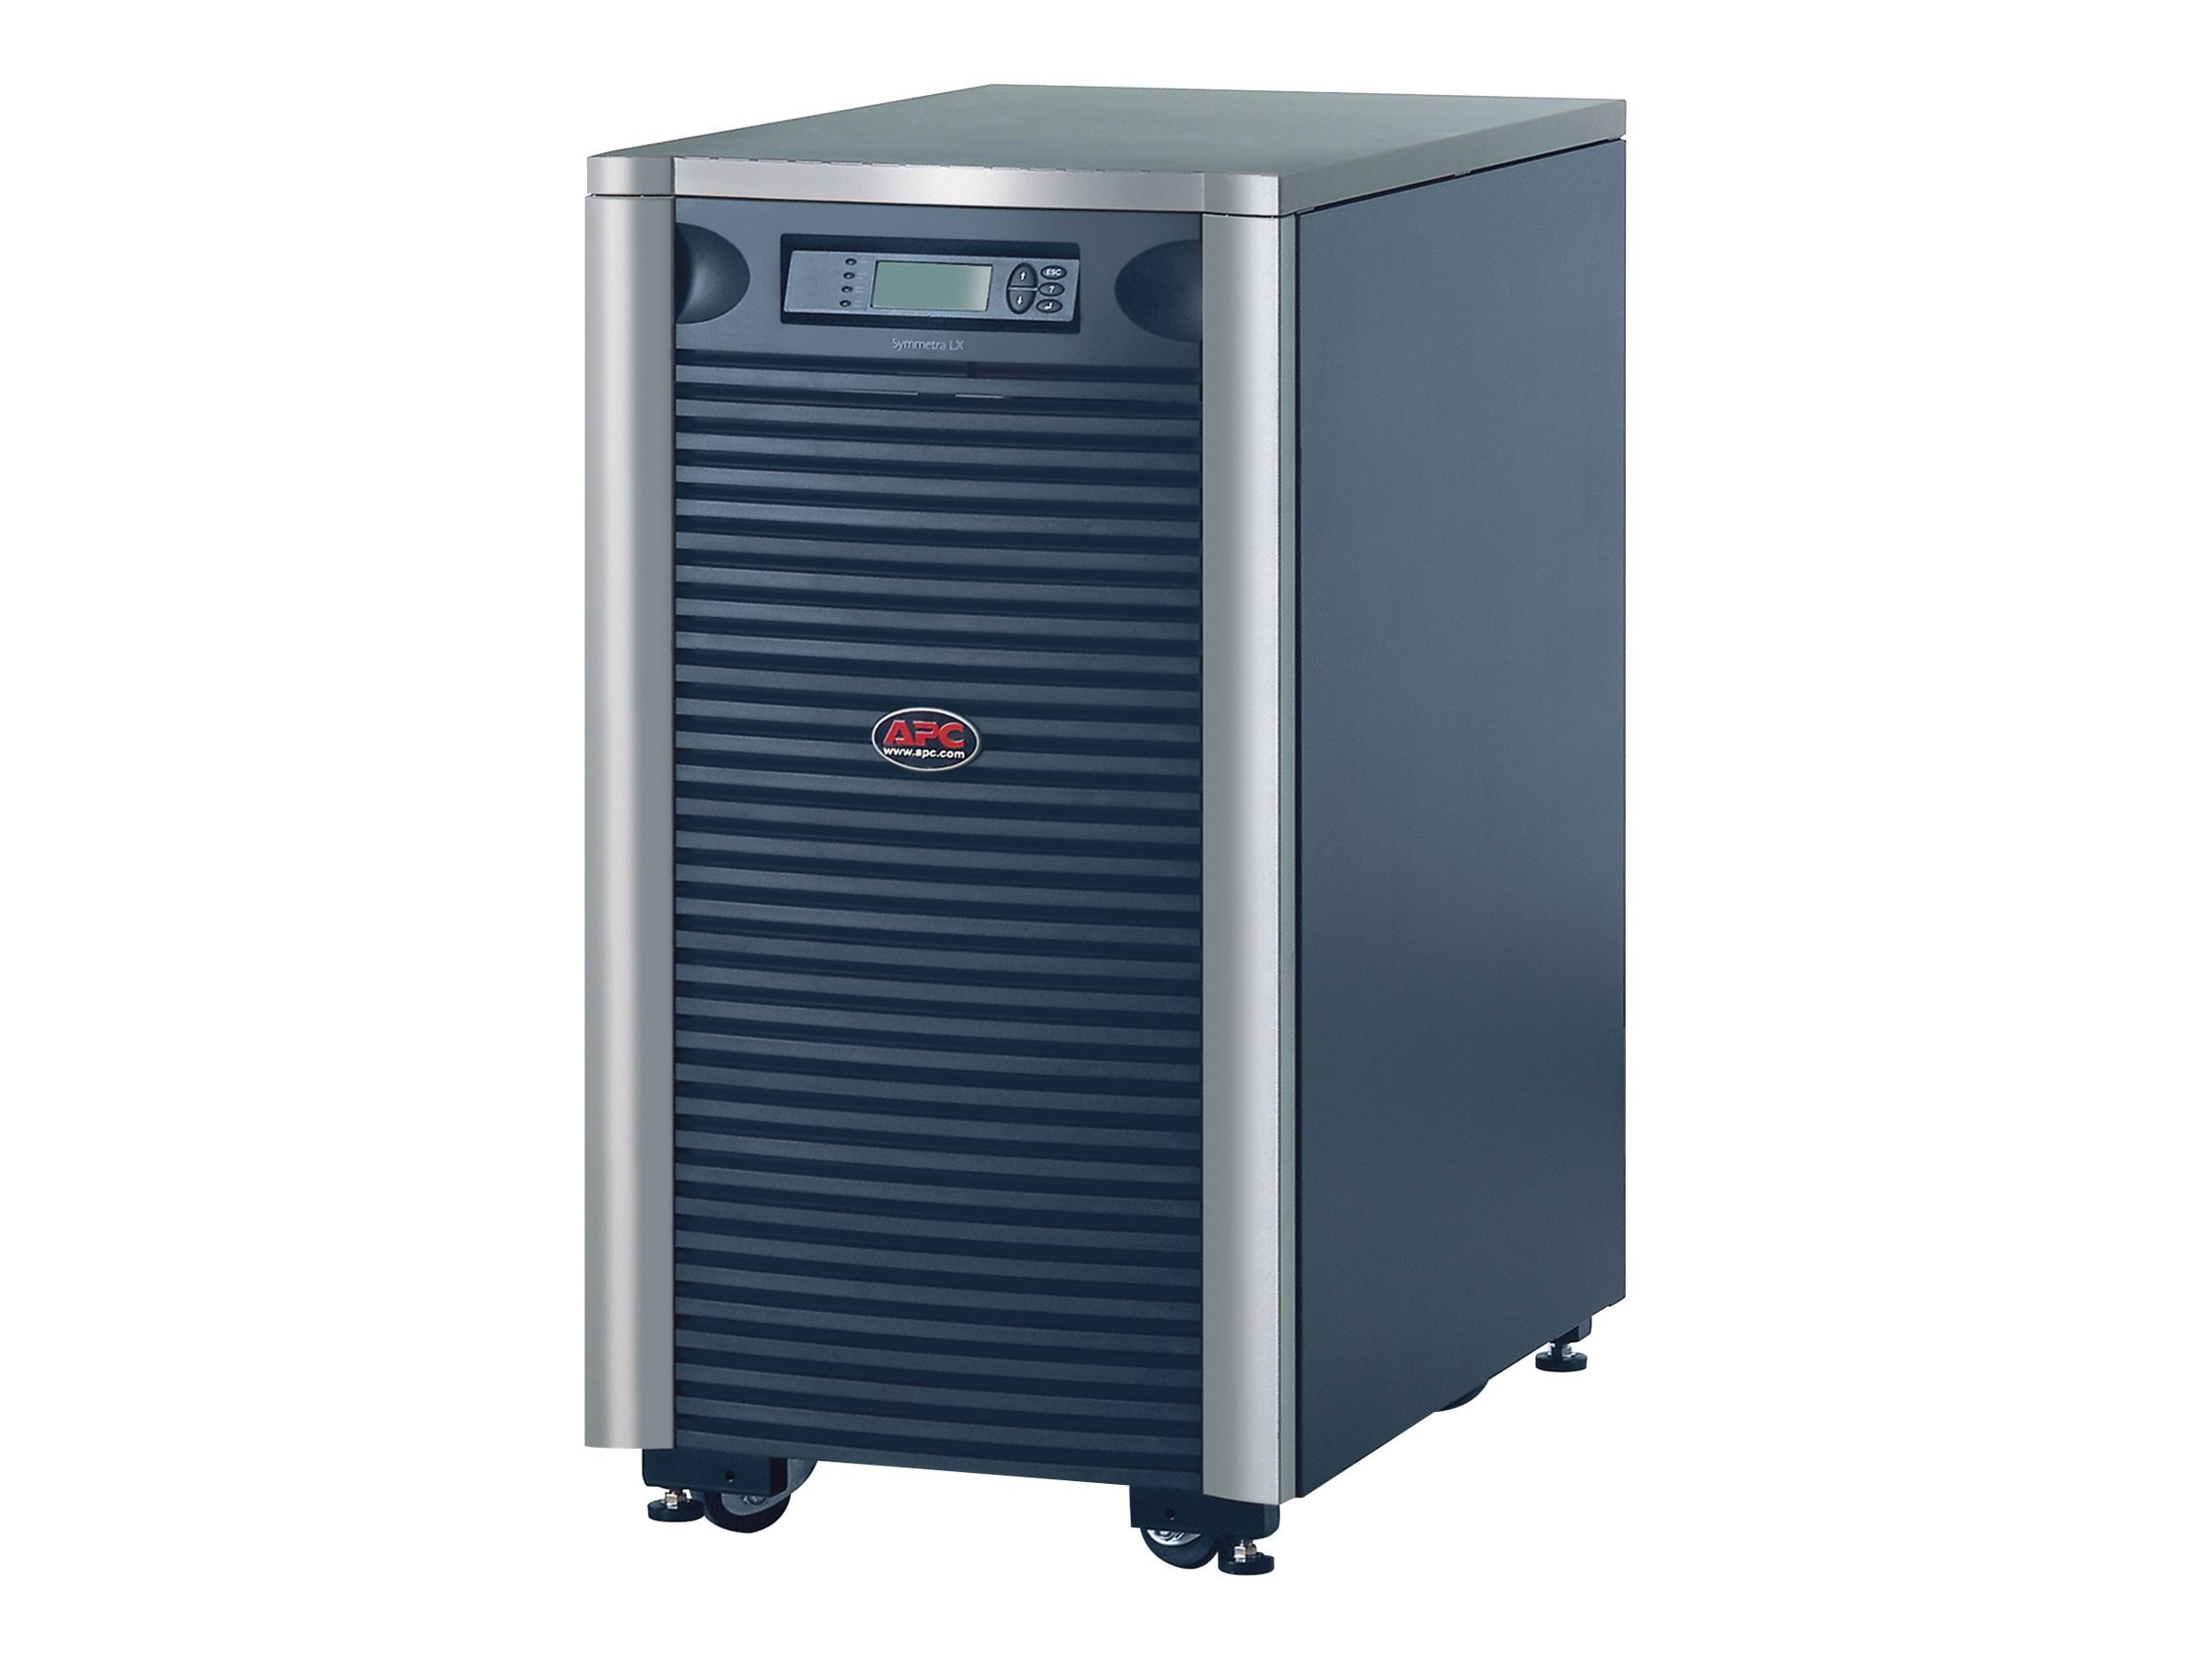 APC Symmetra LX 8kVA Scalable to 16kVA N+1 Tower Extended Runtime 208 240 Volts, SYA8K16PXR, 4926177, Battery Backup/UPS